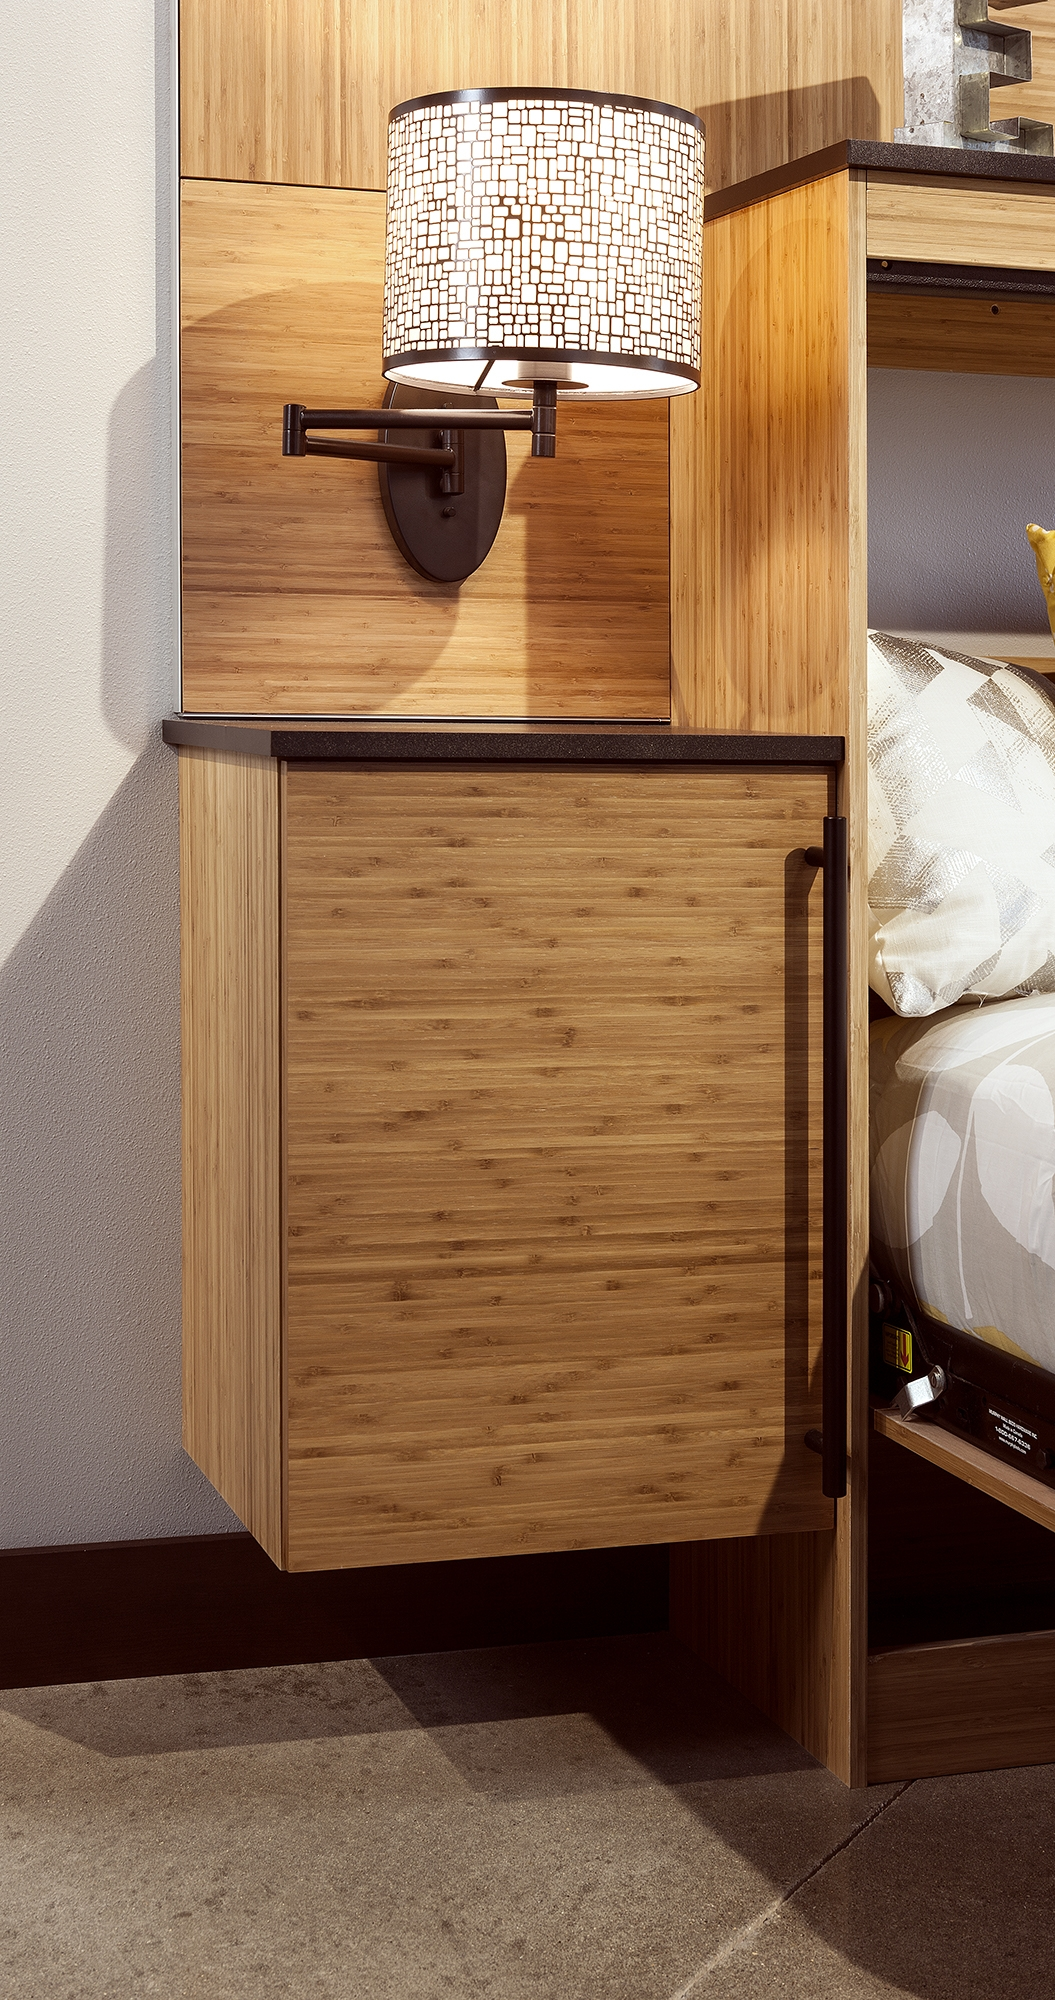 Stained Murphy Bed and cabinets in Bamboo Natural by ShowplaceEVO - view 3